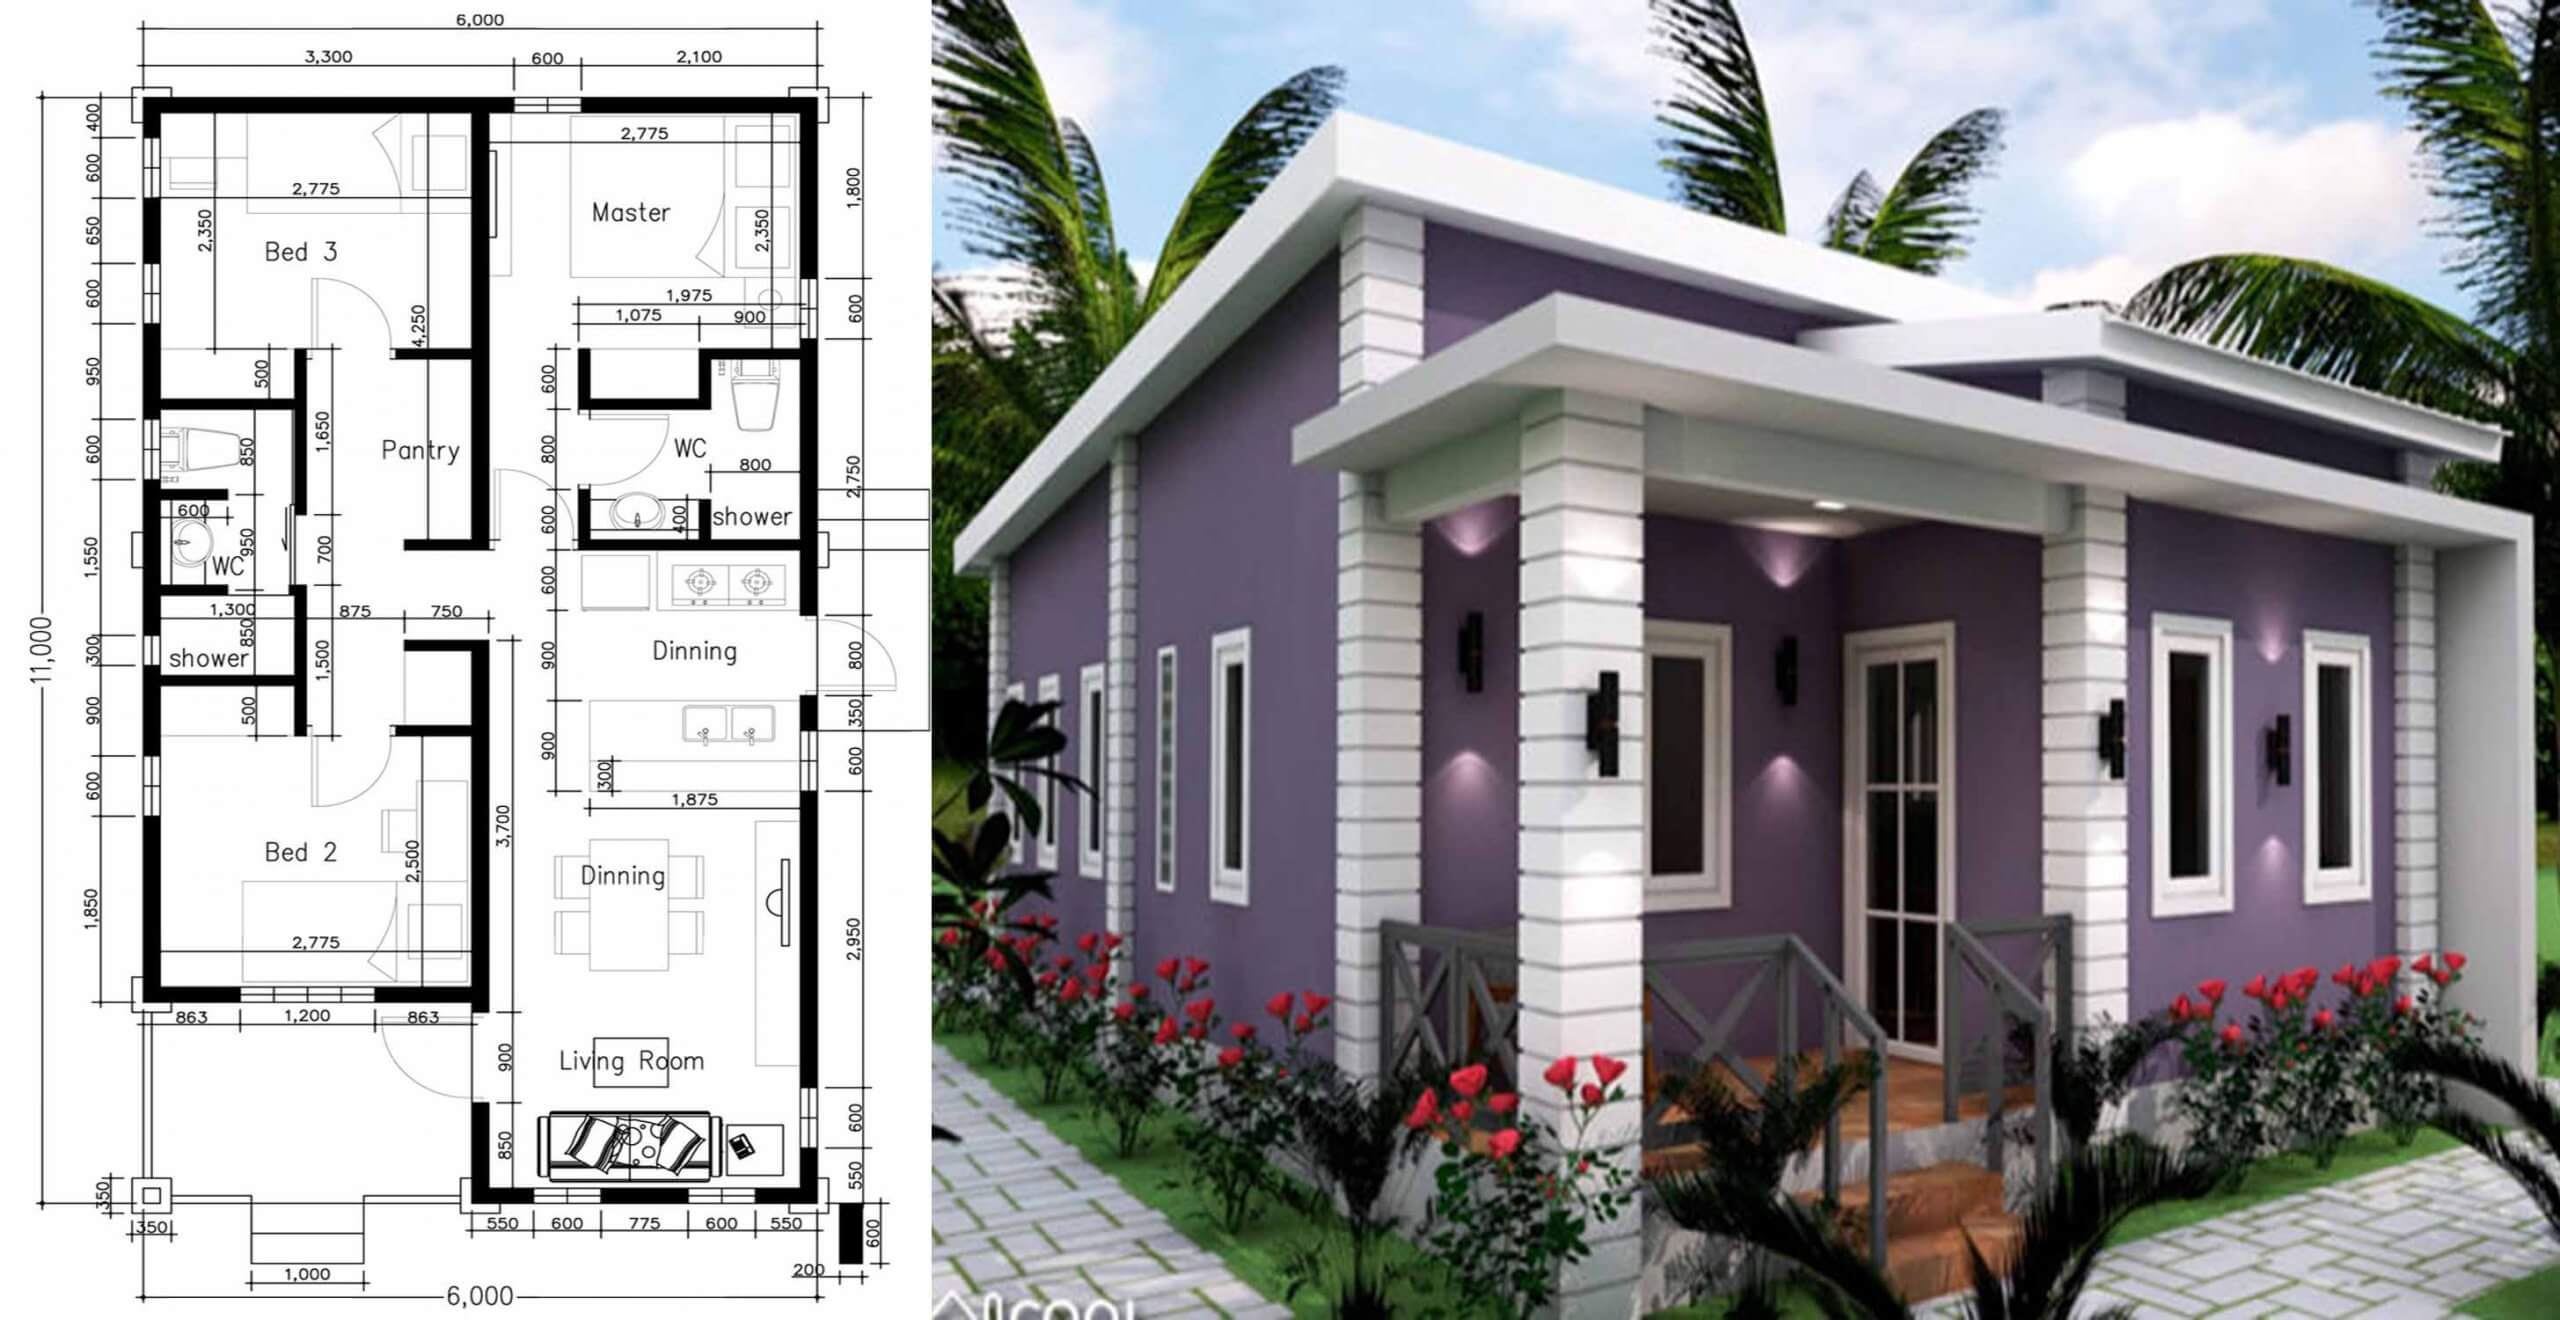 Pleasing Amazing 3 Bedrooms Small House Plan Engineering Discoveries Download Free Architecture Designs Rallybritishbridgeorg